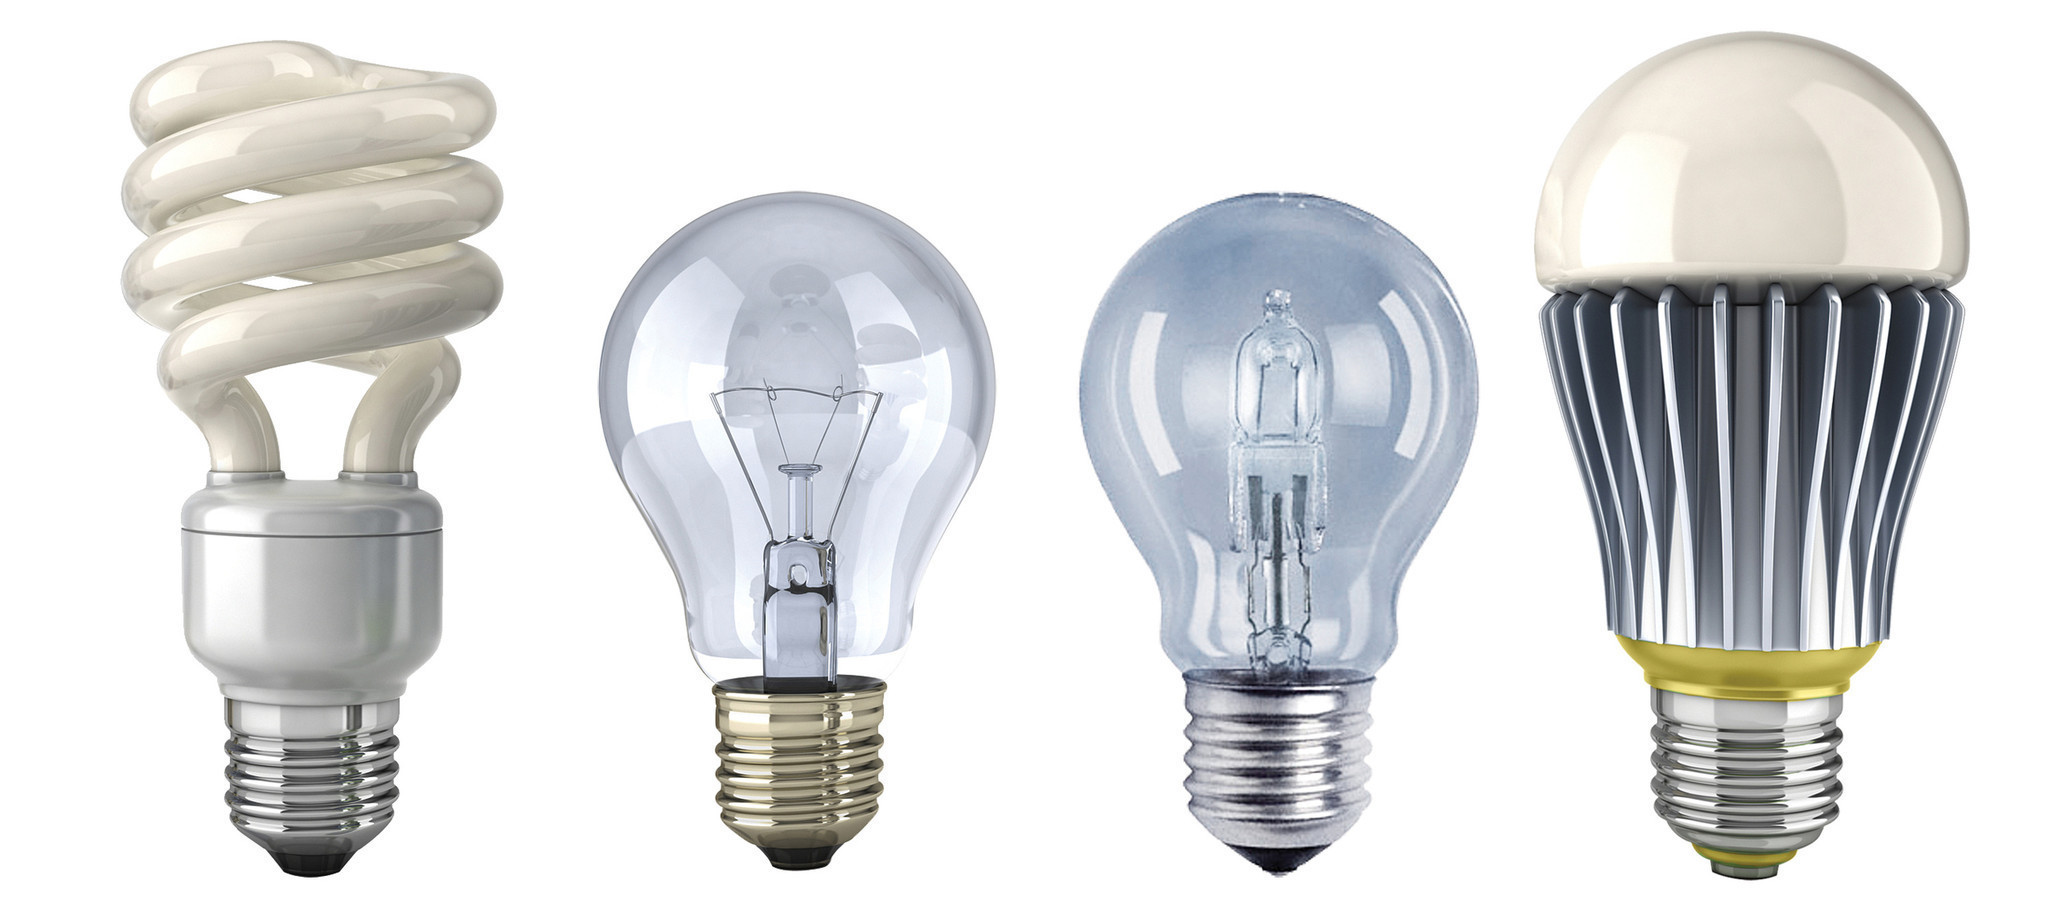 ge 39 s bright idea phase out compact fluorescent bulbs in 2016 shift to leds chicago tribune. Black Bedroom Furniture Sets. Home Design Ideas